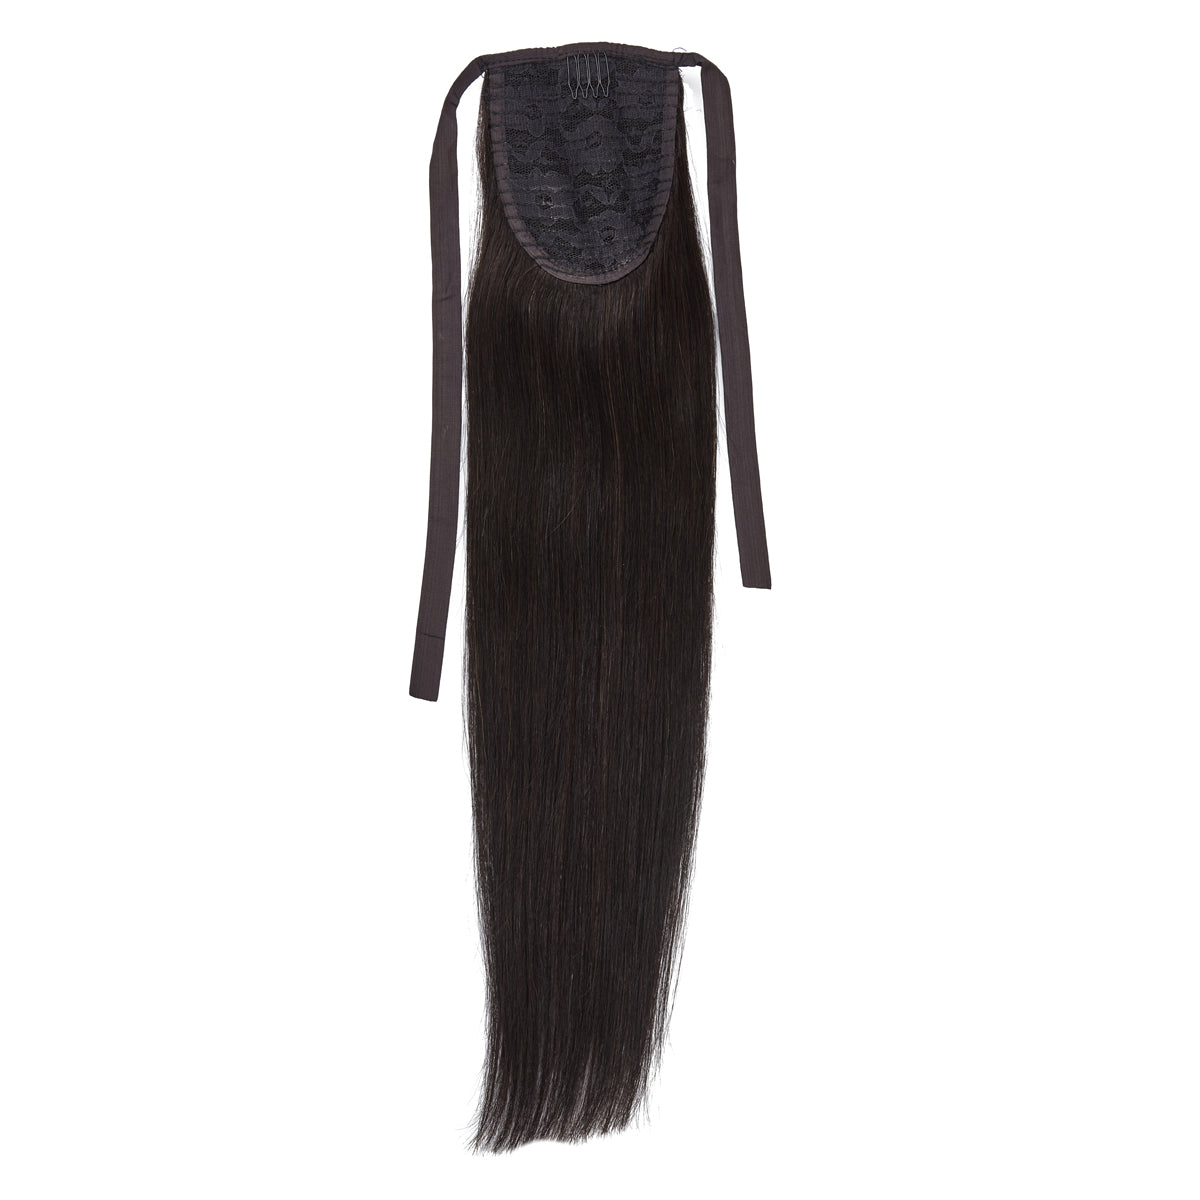 Brown Black 20inch Clip in Ponytail